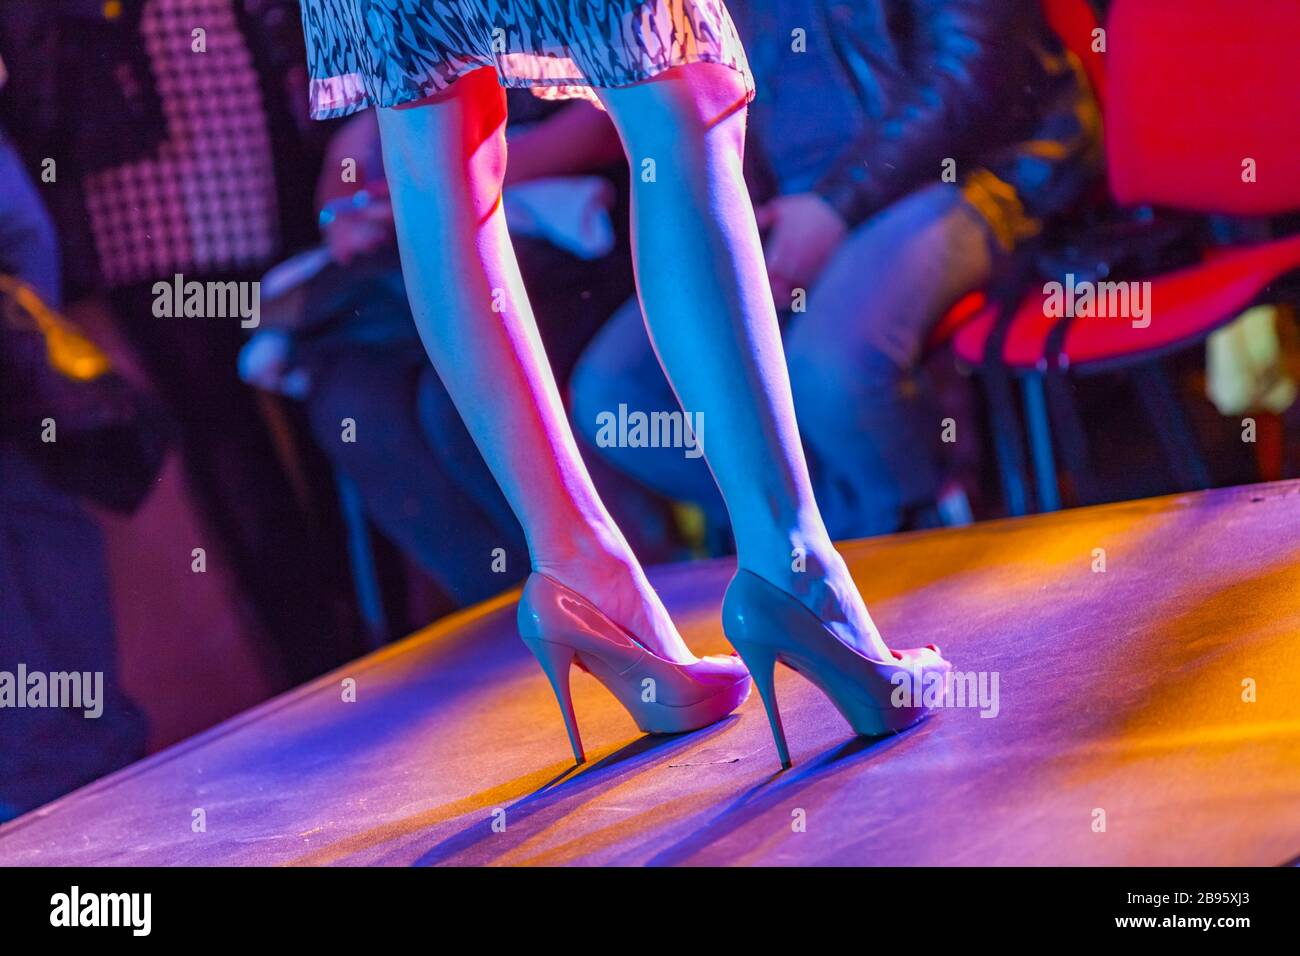 Female model on fashion stage runway legs and heels standing towards public Stock Photo